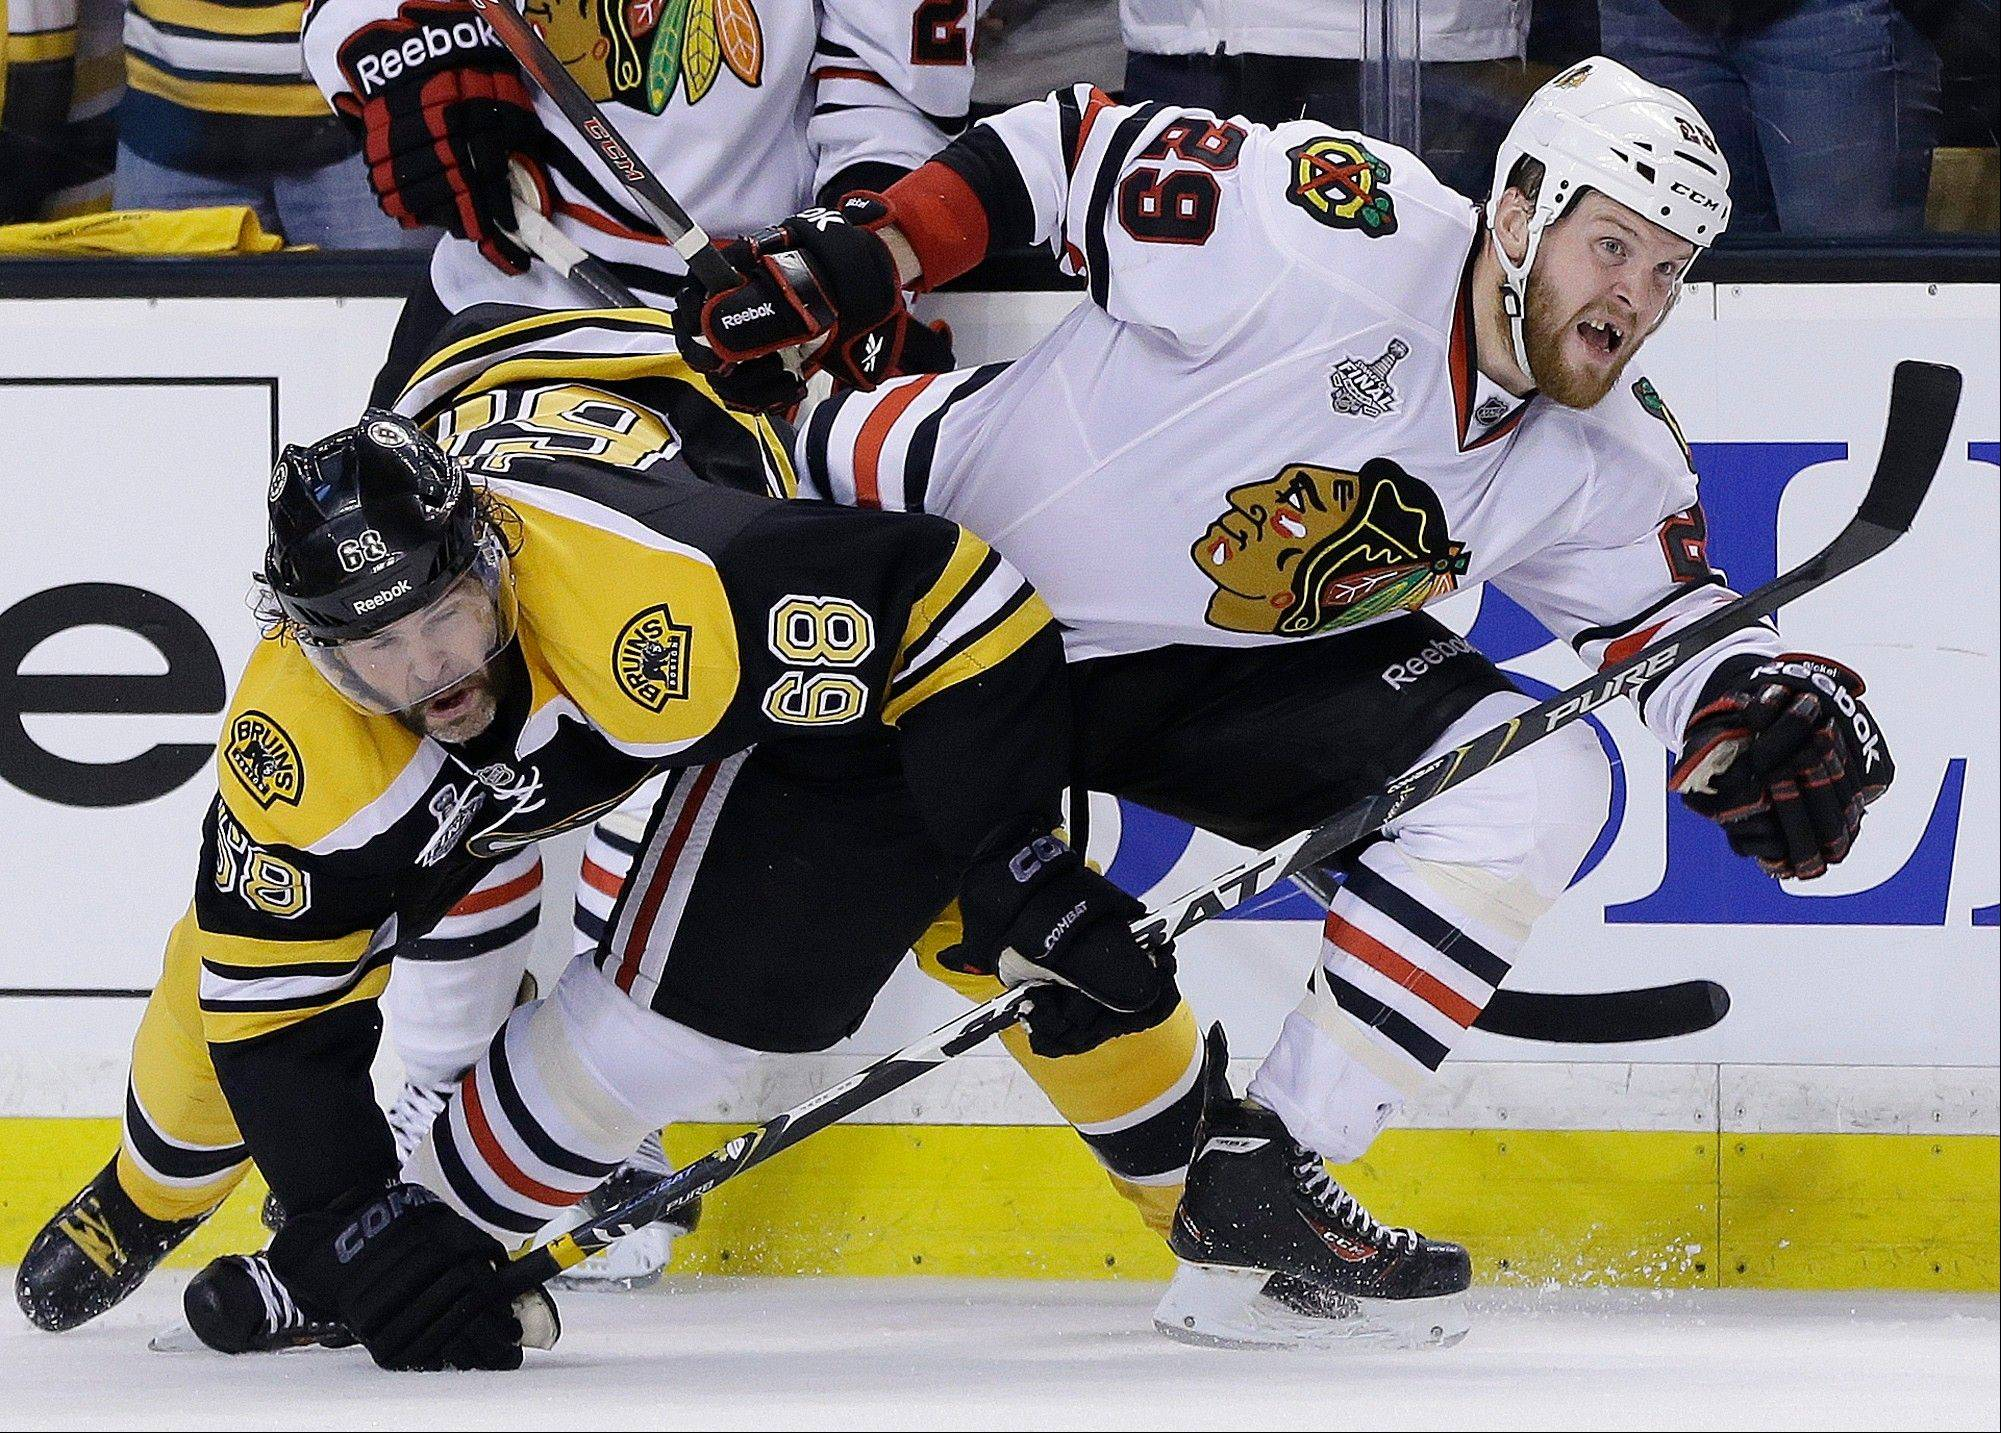 Keeping Bickell should be Bowman's No. 1 priority